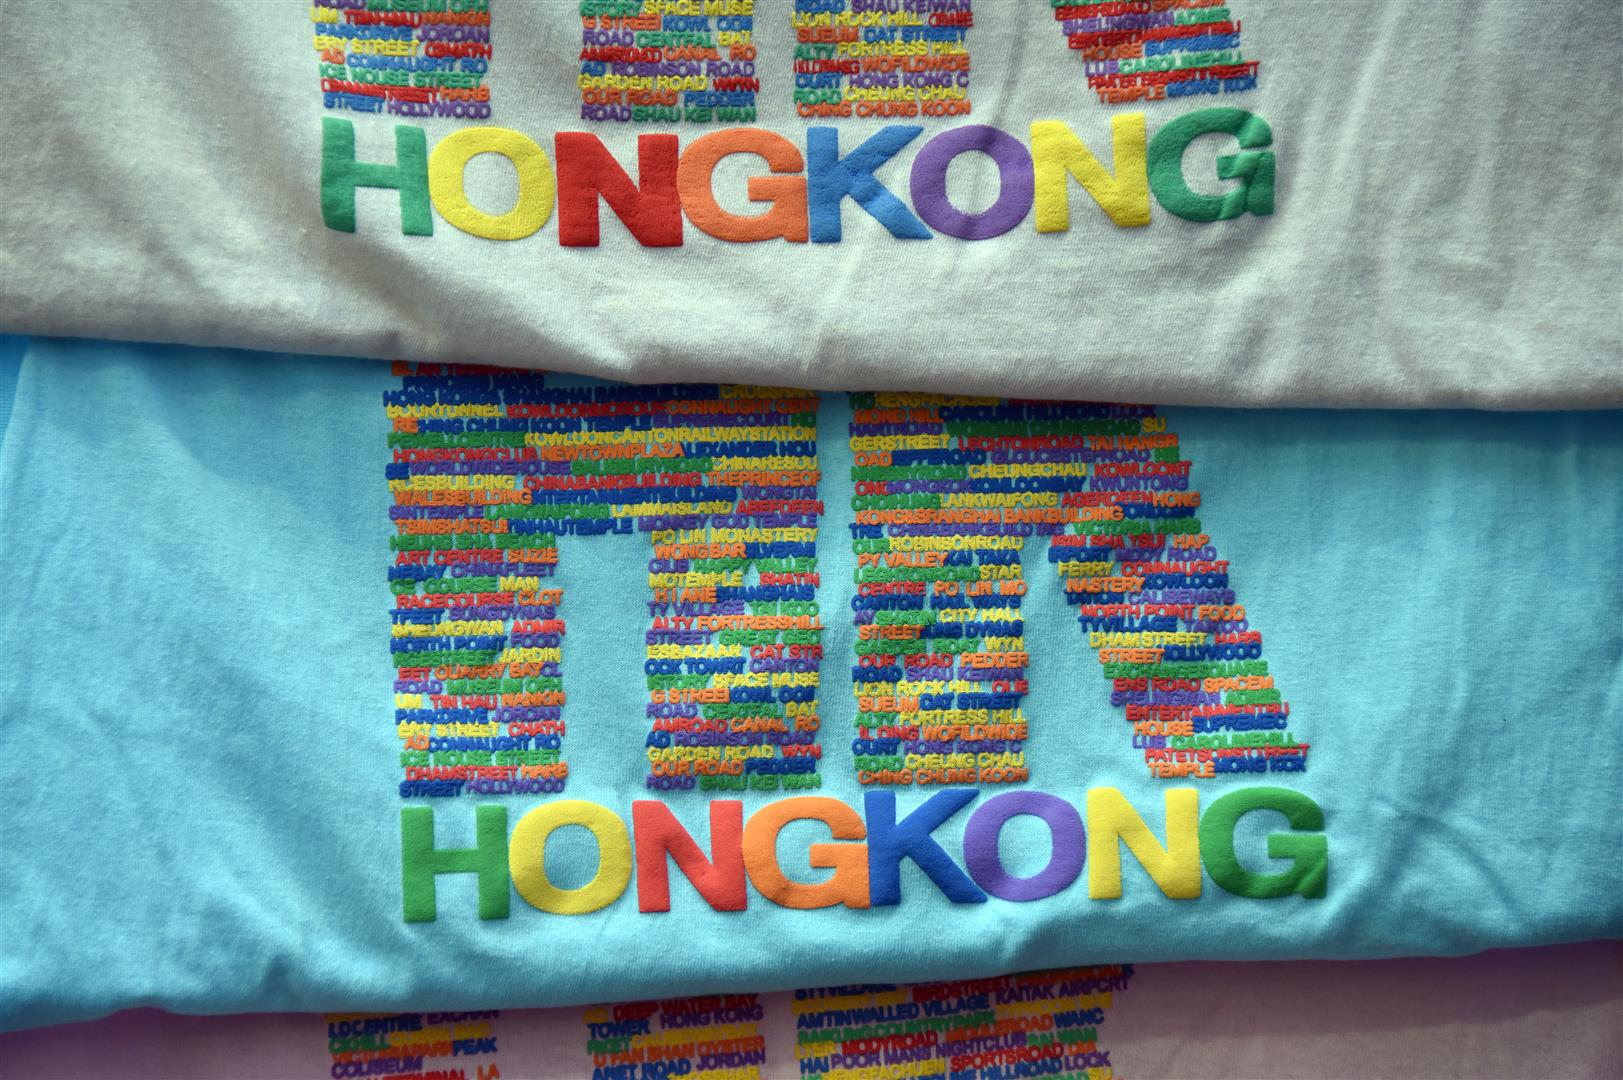 Hong Kong - TShirts (Large) - Copy